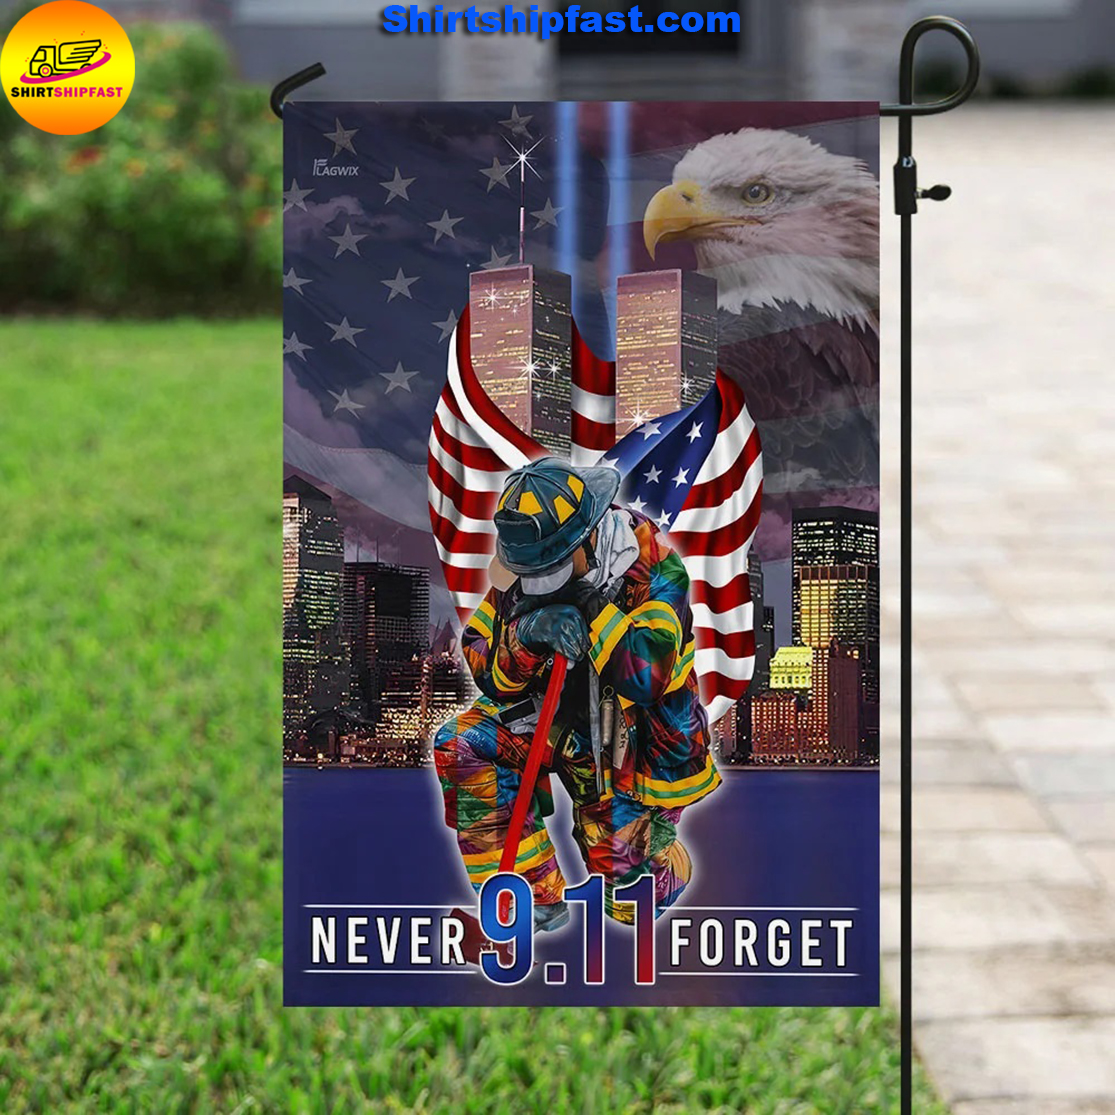 Never forget September 11th American flag - Picture 3